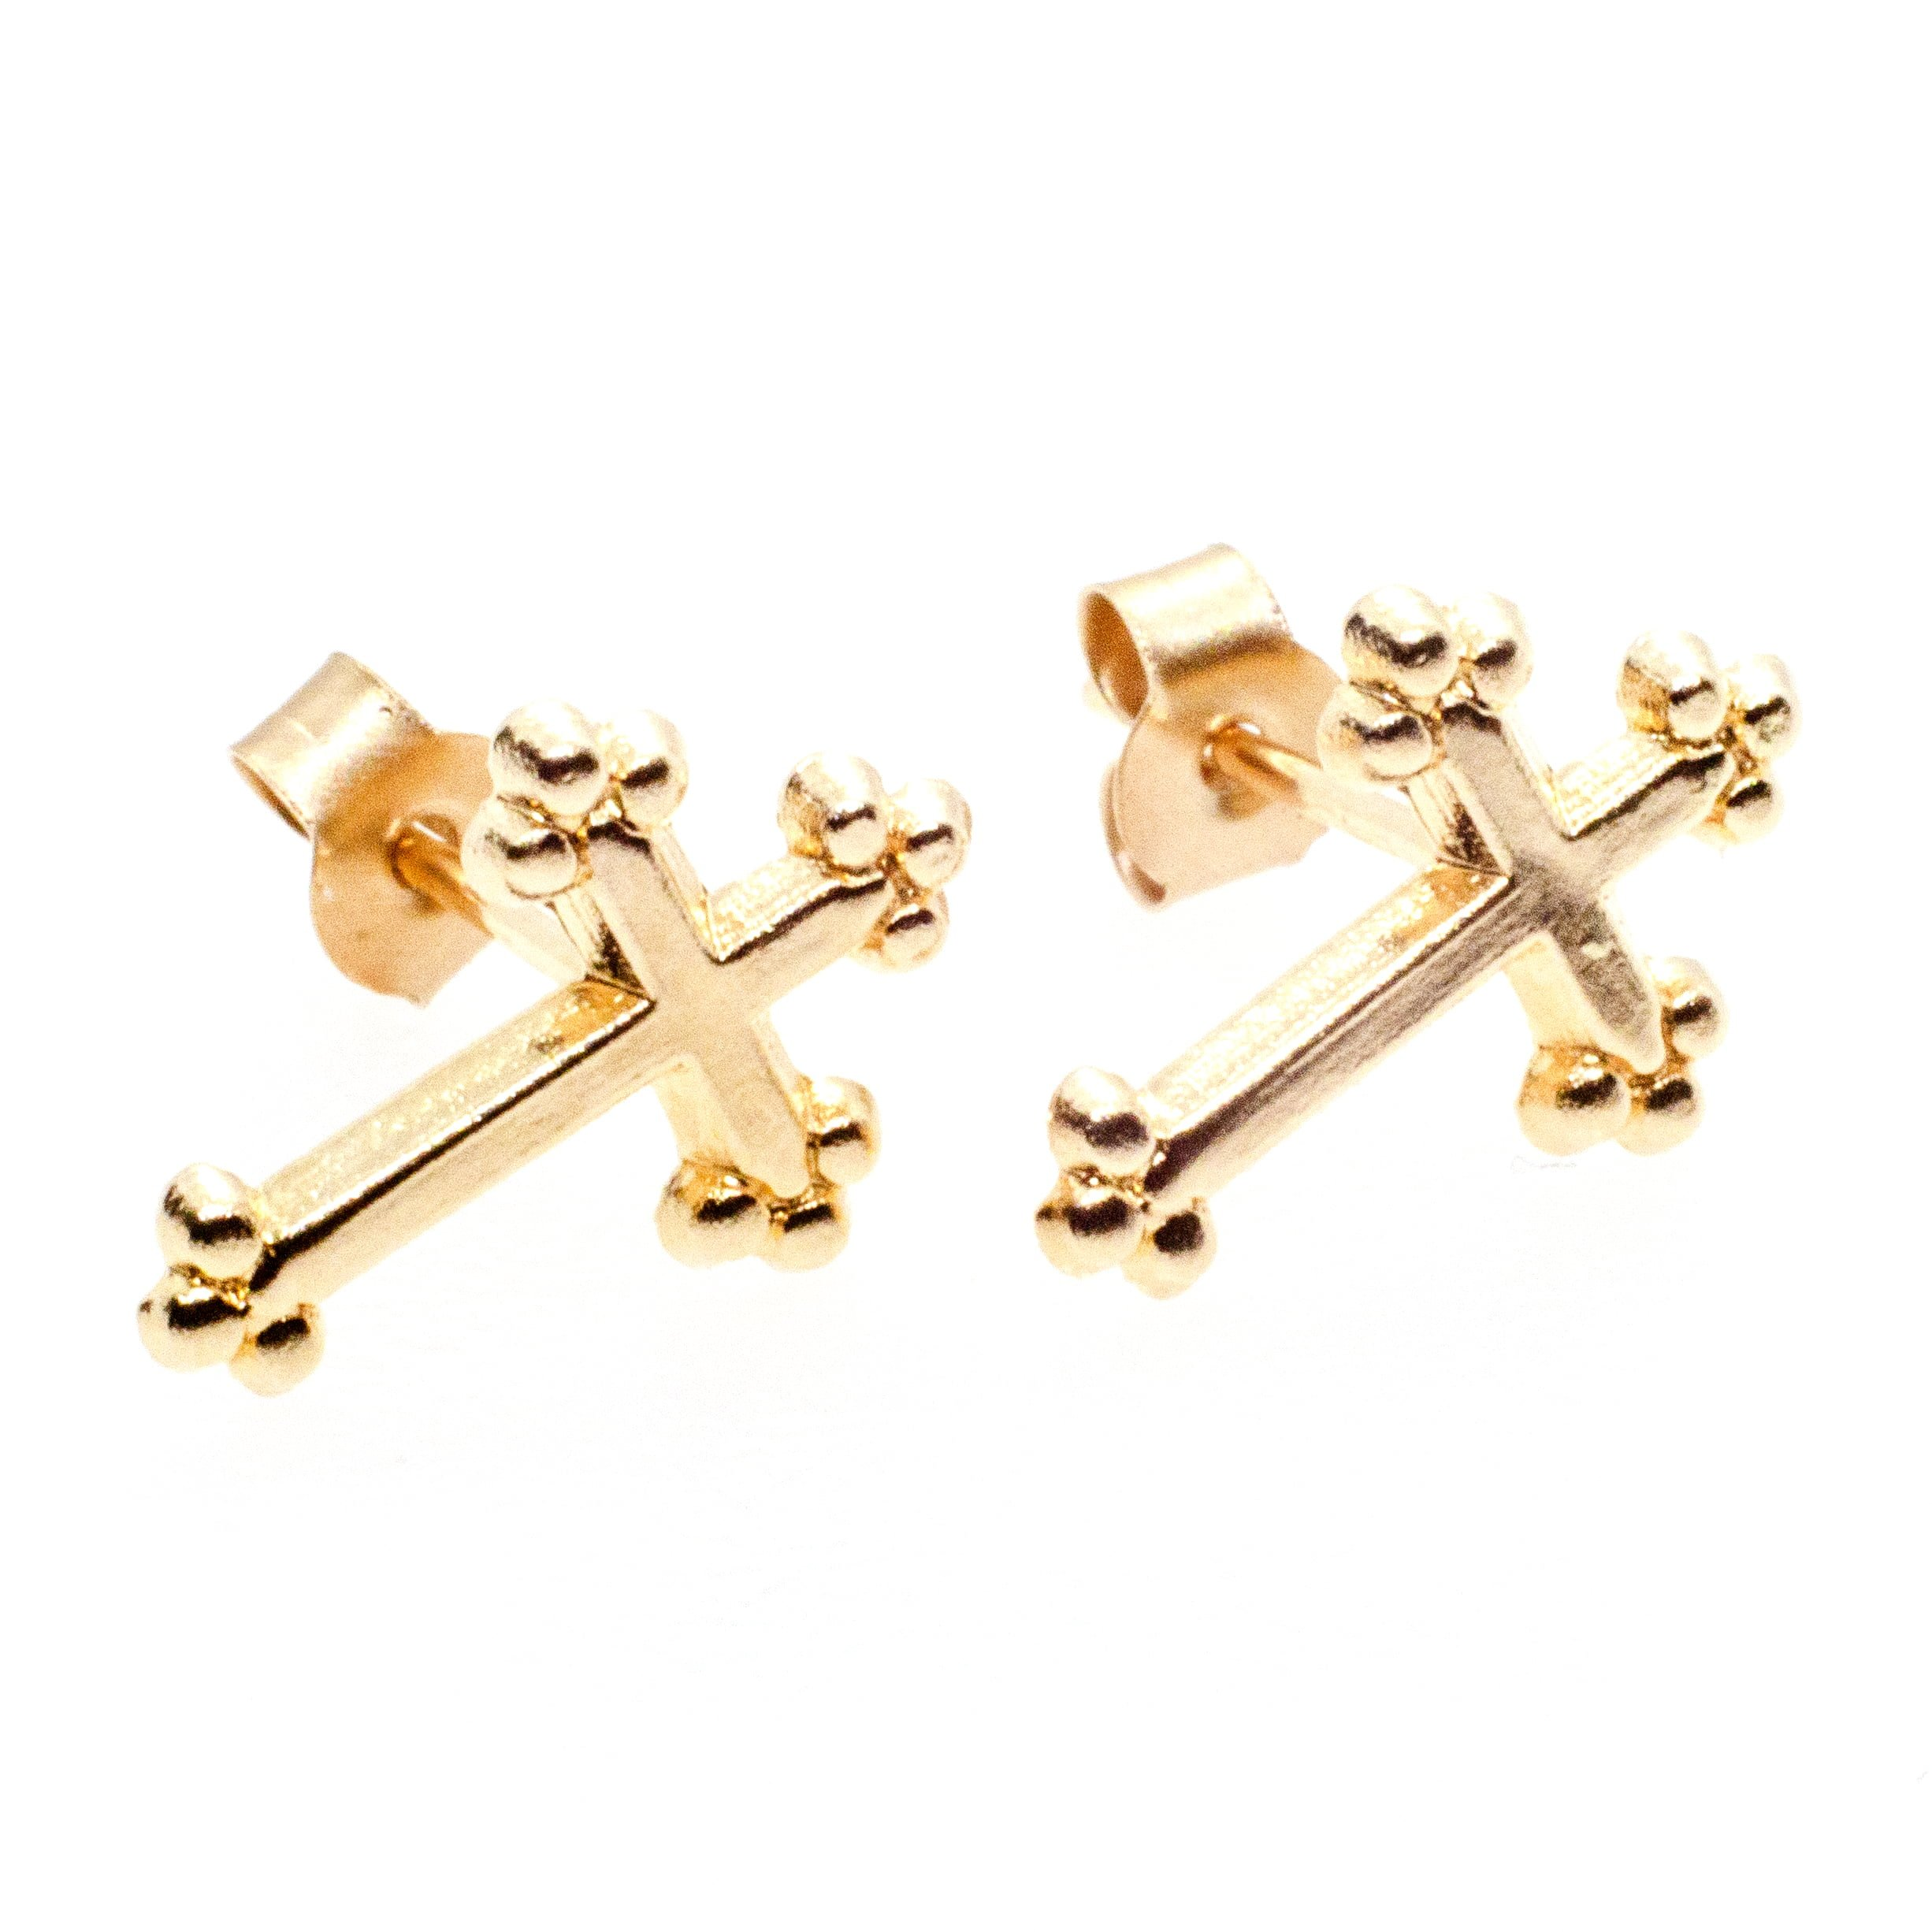 10mm x 5mm cross stud earrings 9ct yellow gold